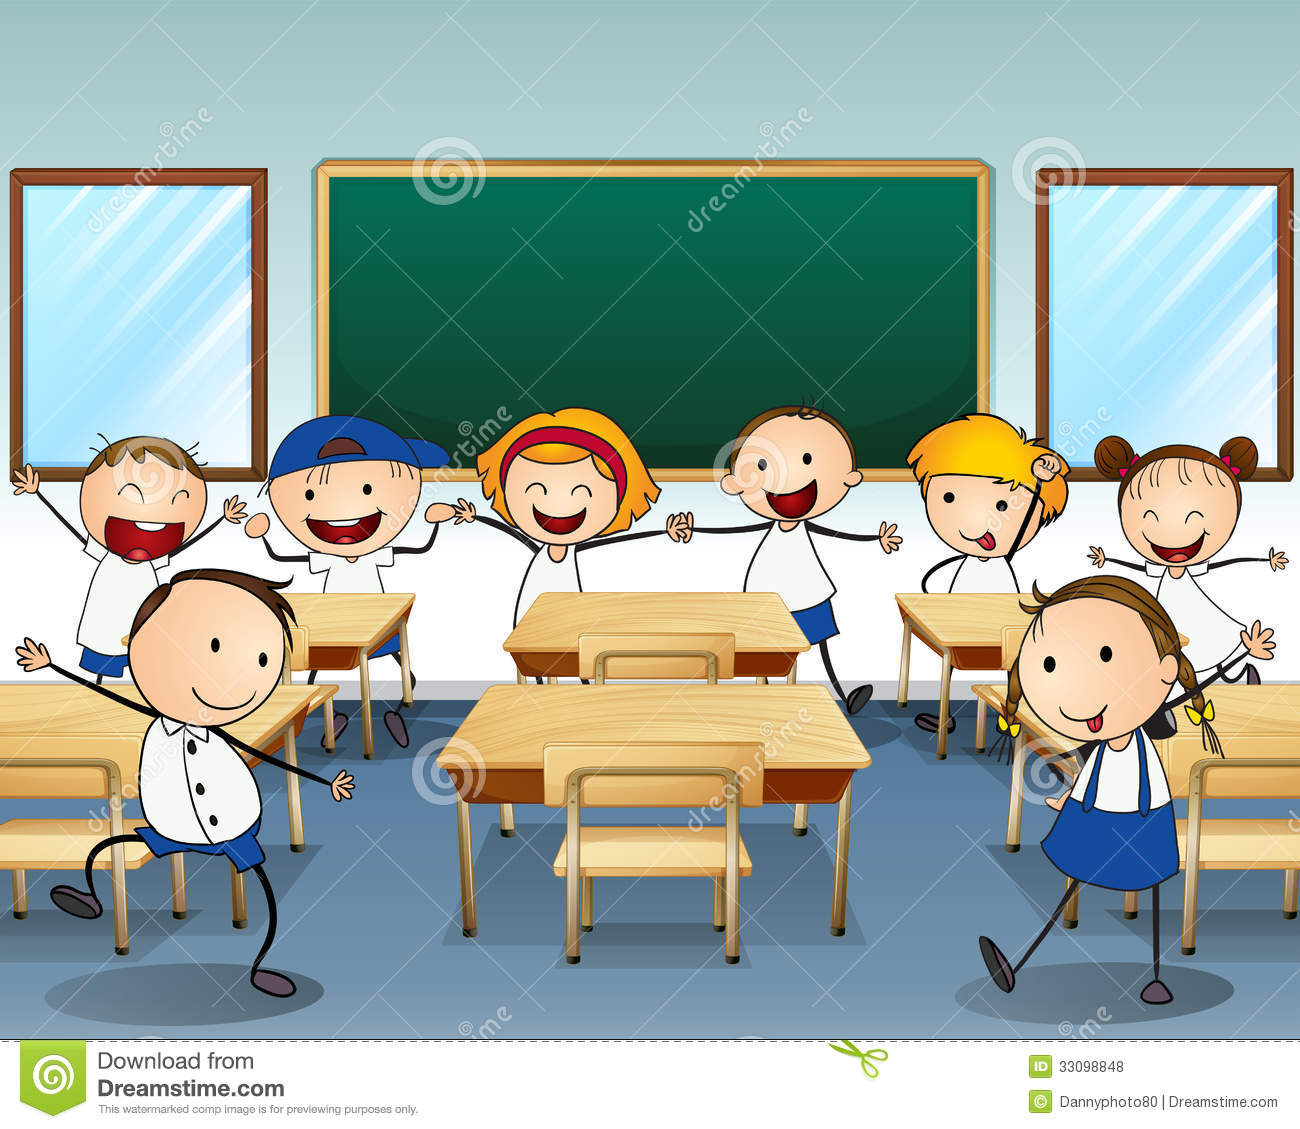 Children Dancing Inside The Classroom Royalty Free Stock Photos